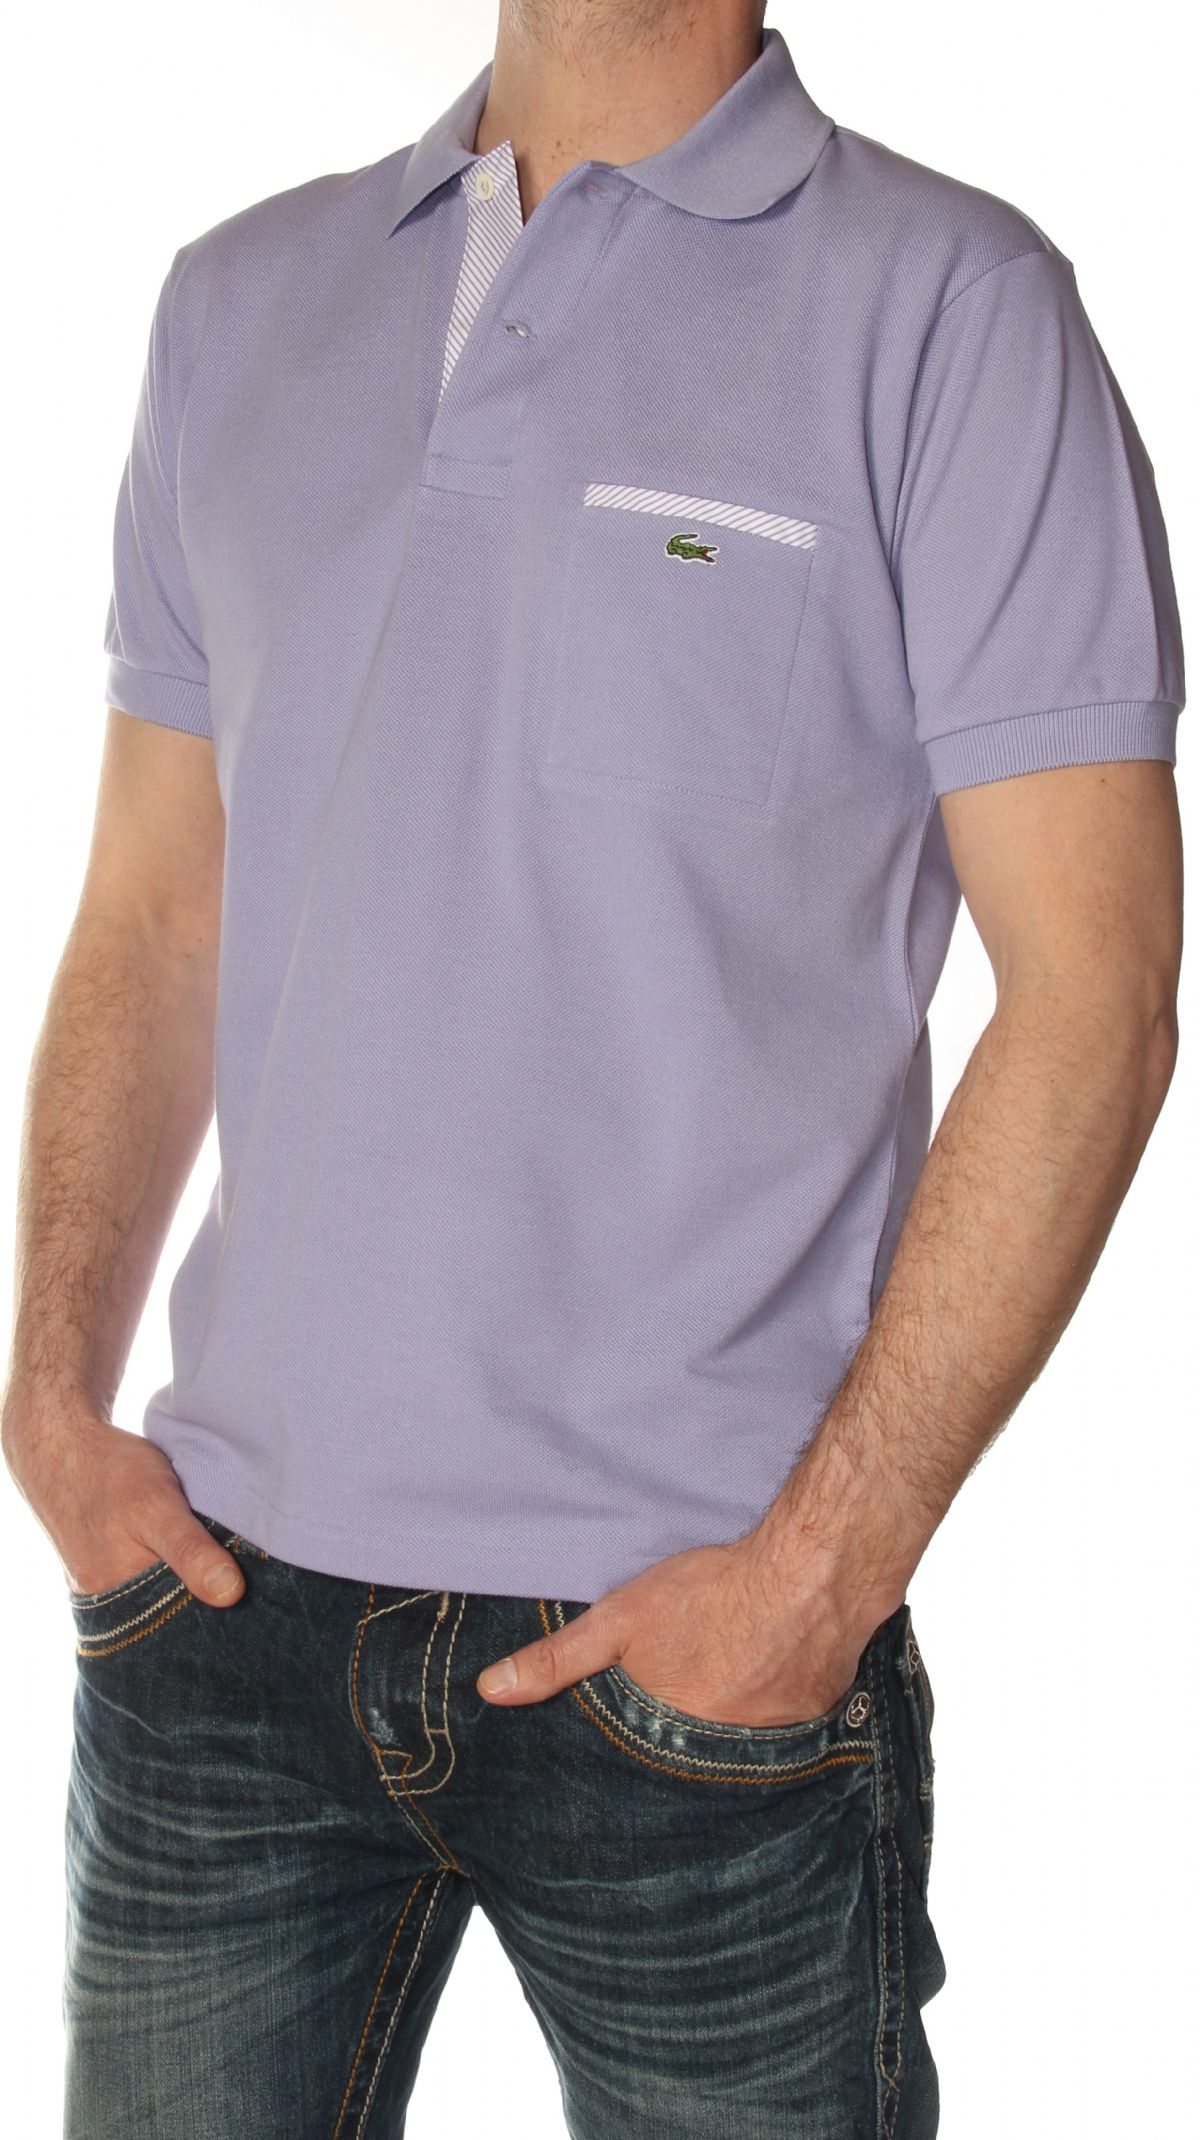 upload/product_display_image/201211/lacoste_varhem_violete_a.jpg